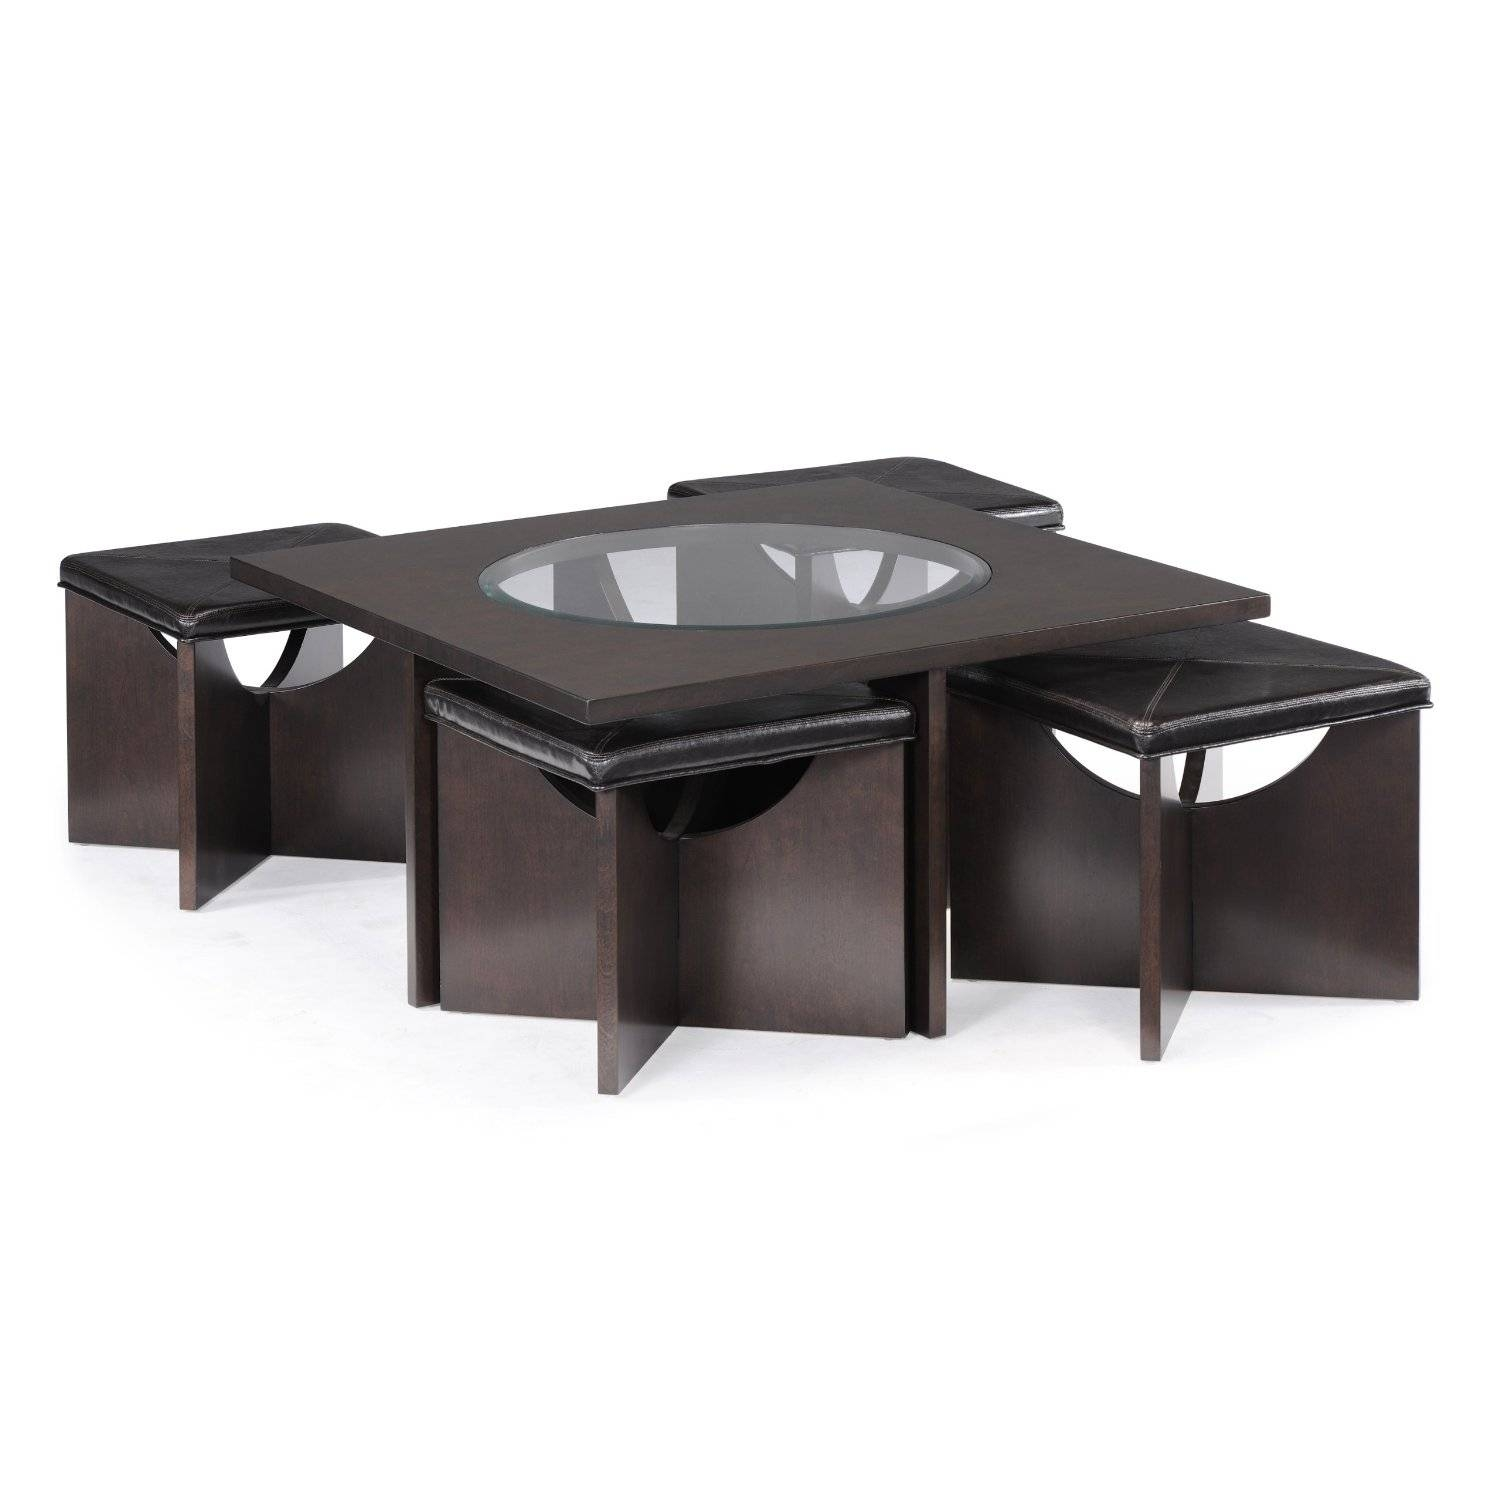 Furniture: Luxury Coffee Table With Stools For Living Room With Regard To Coffee Table With Chairs (View 25 of 30)